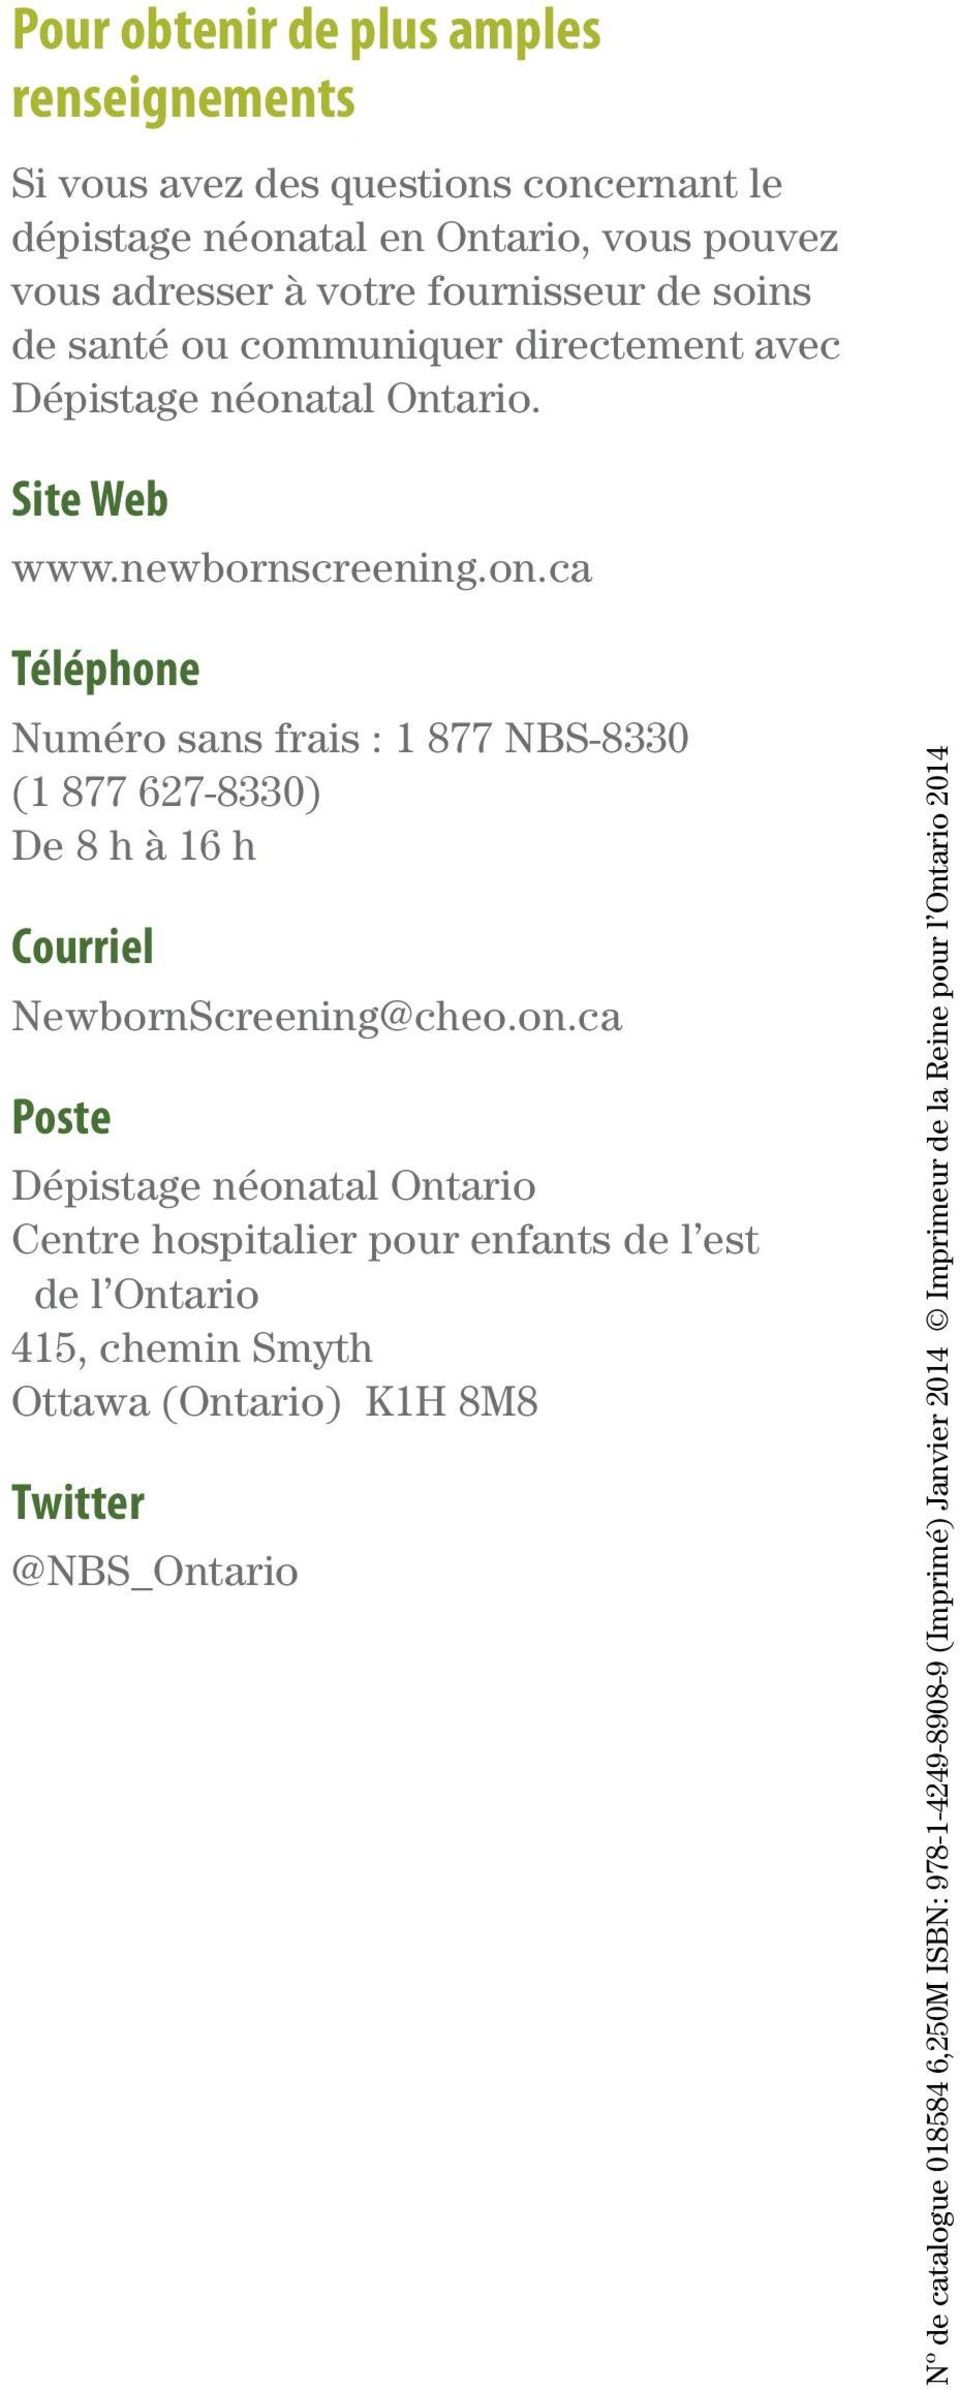 tal Ontario. Site Web www.newbornscreening.on.